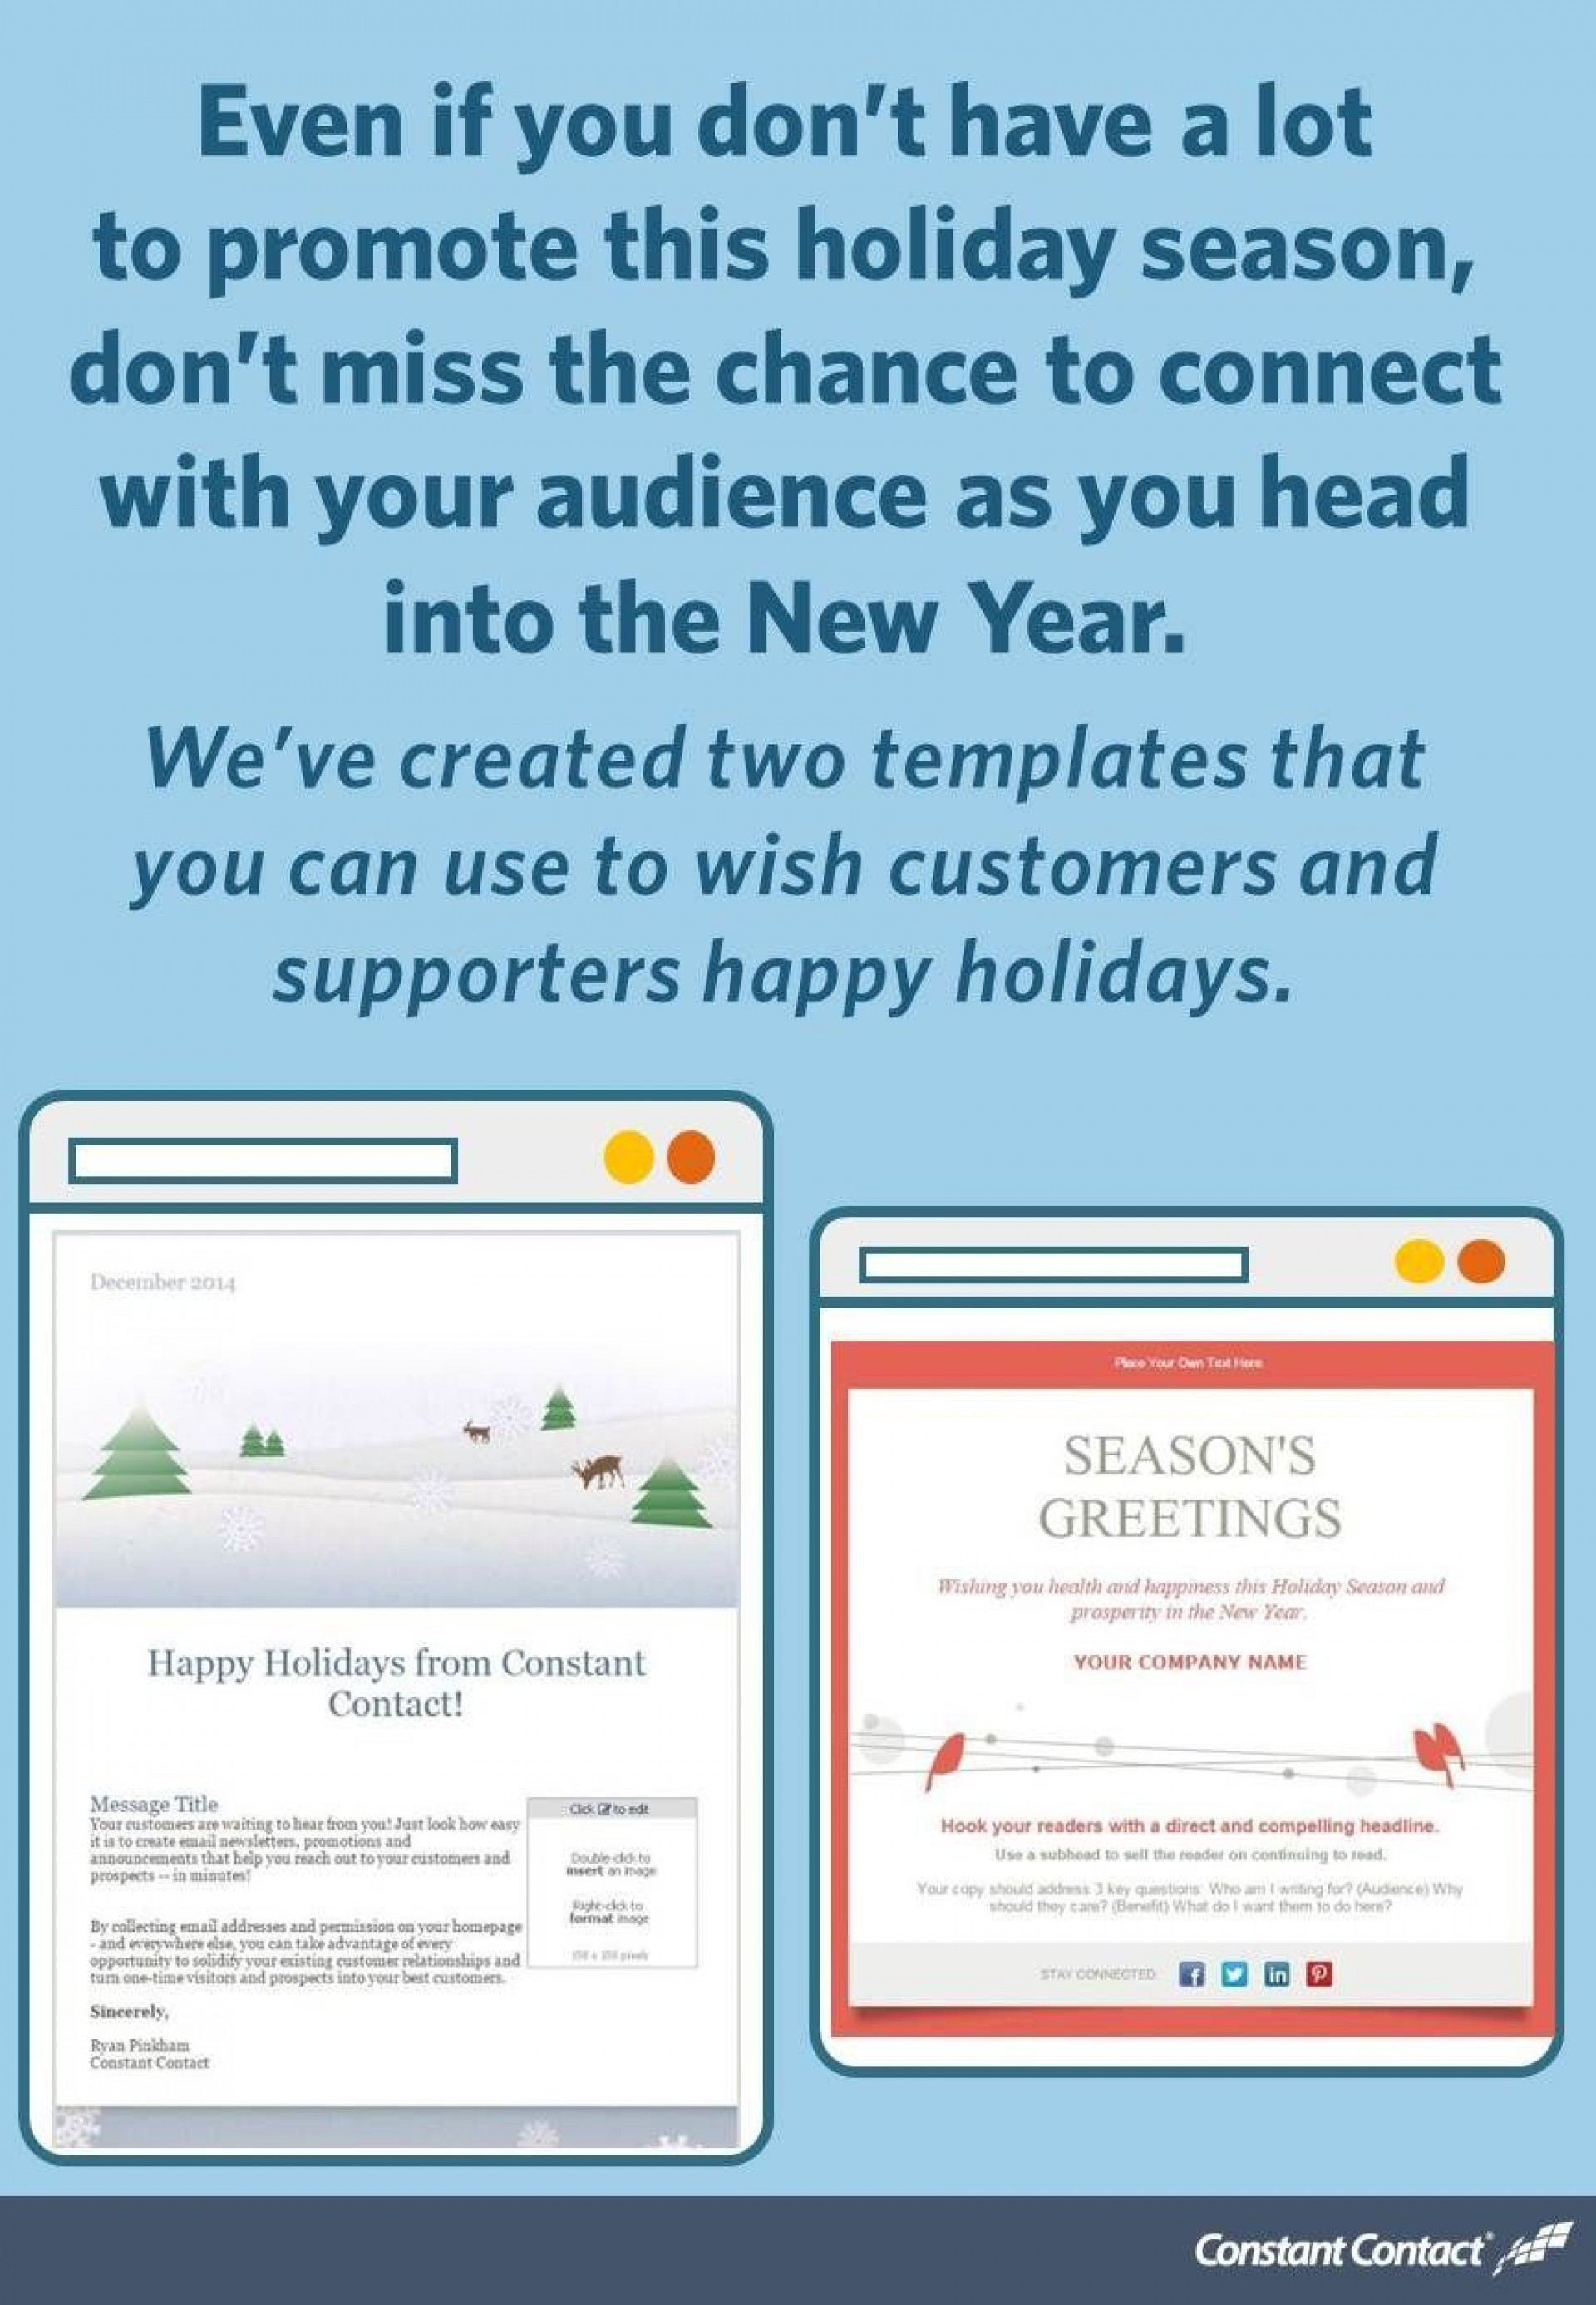 002 Unique Holiday E Mail Template Photo  Templates Mailchimp Email1920